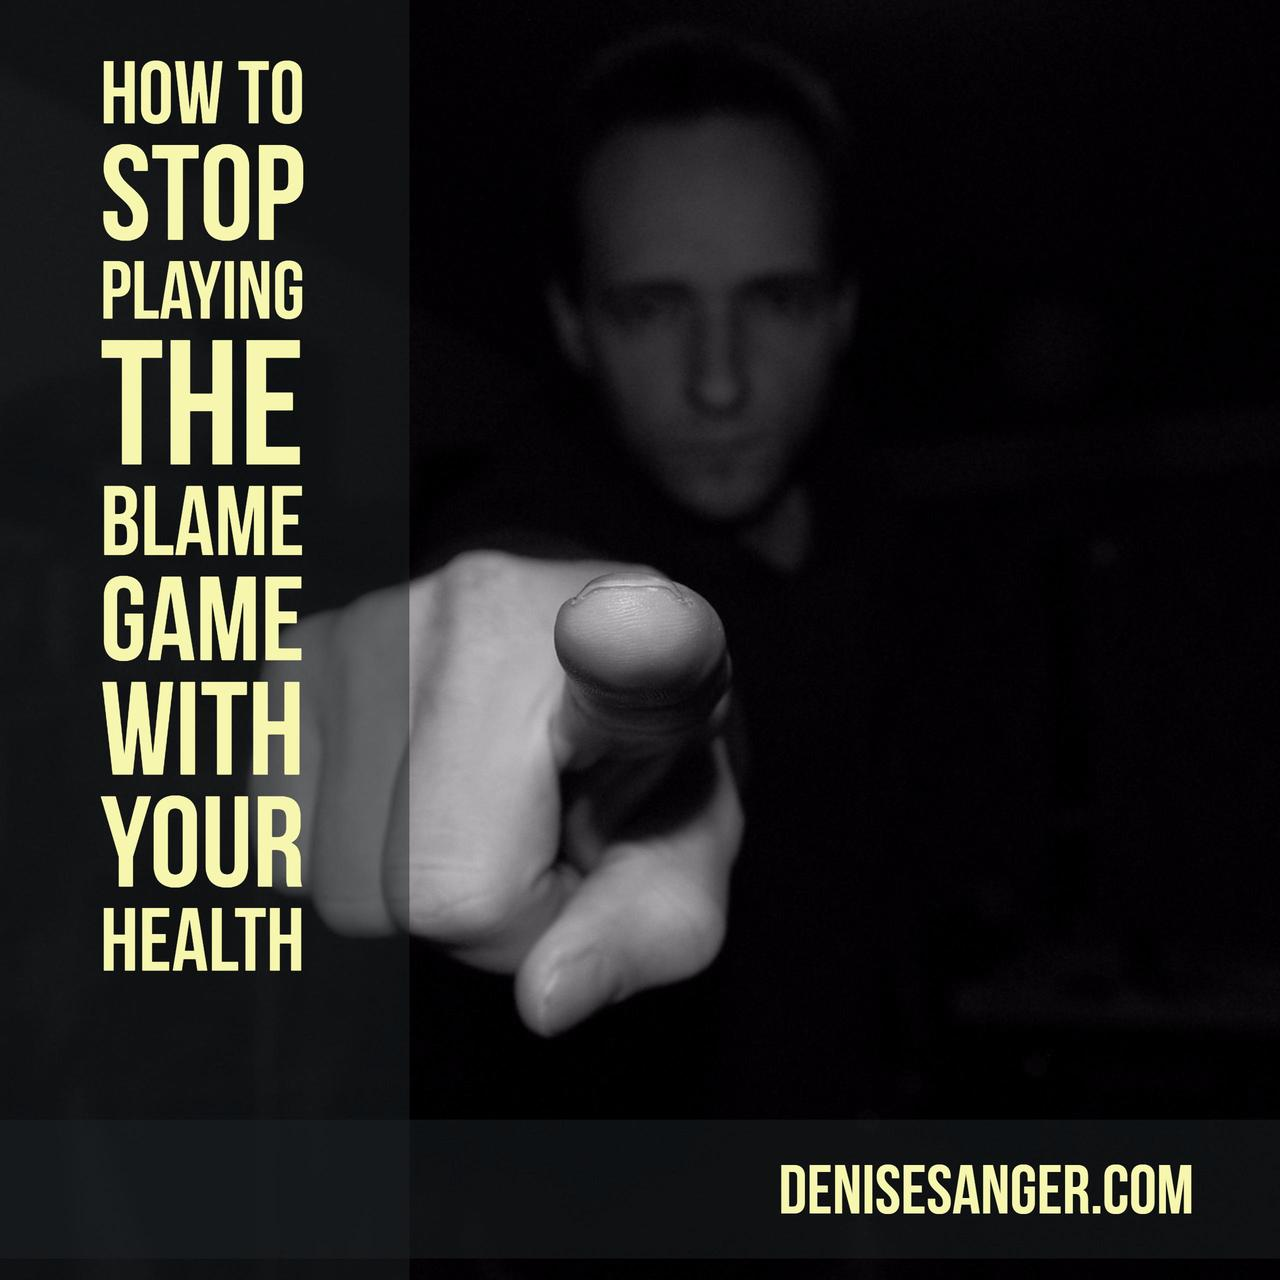 Stop Playing The Blame Game With Your Health